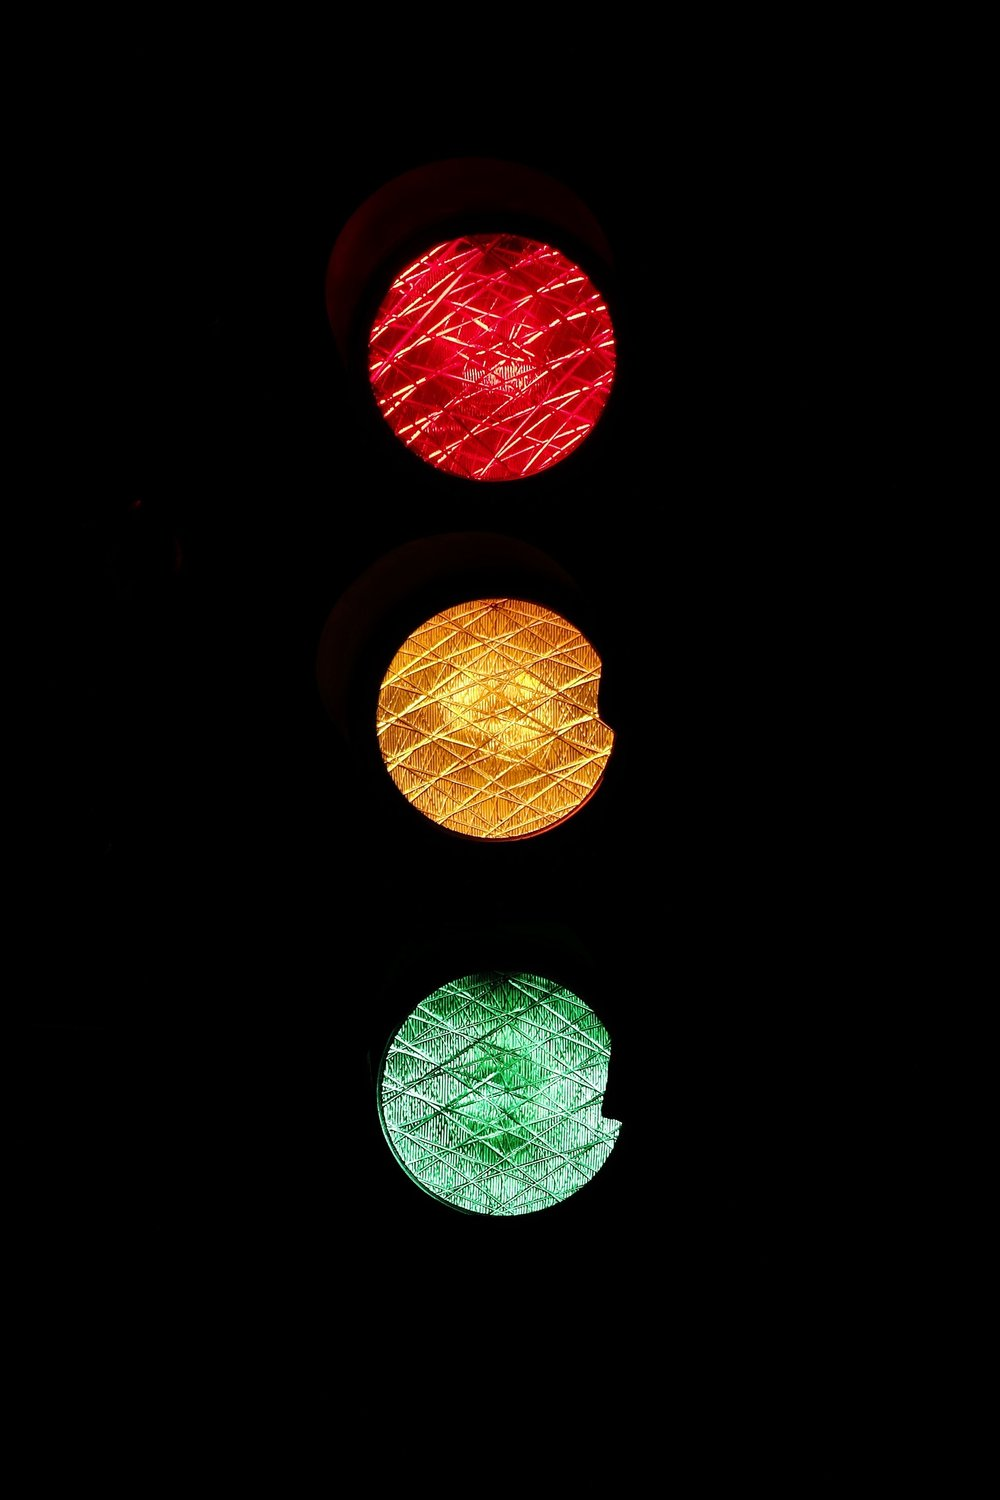 Traffic Light Eating and Portion Control